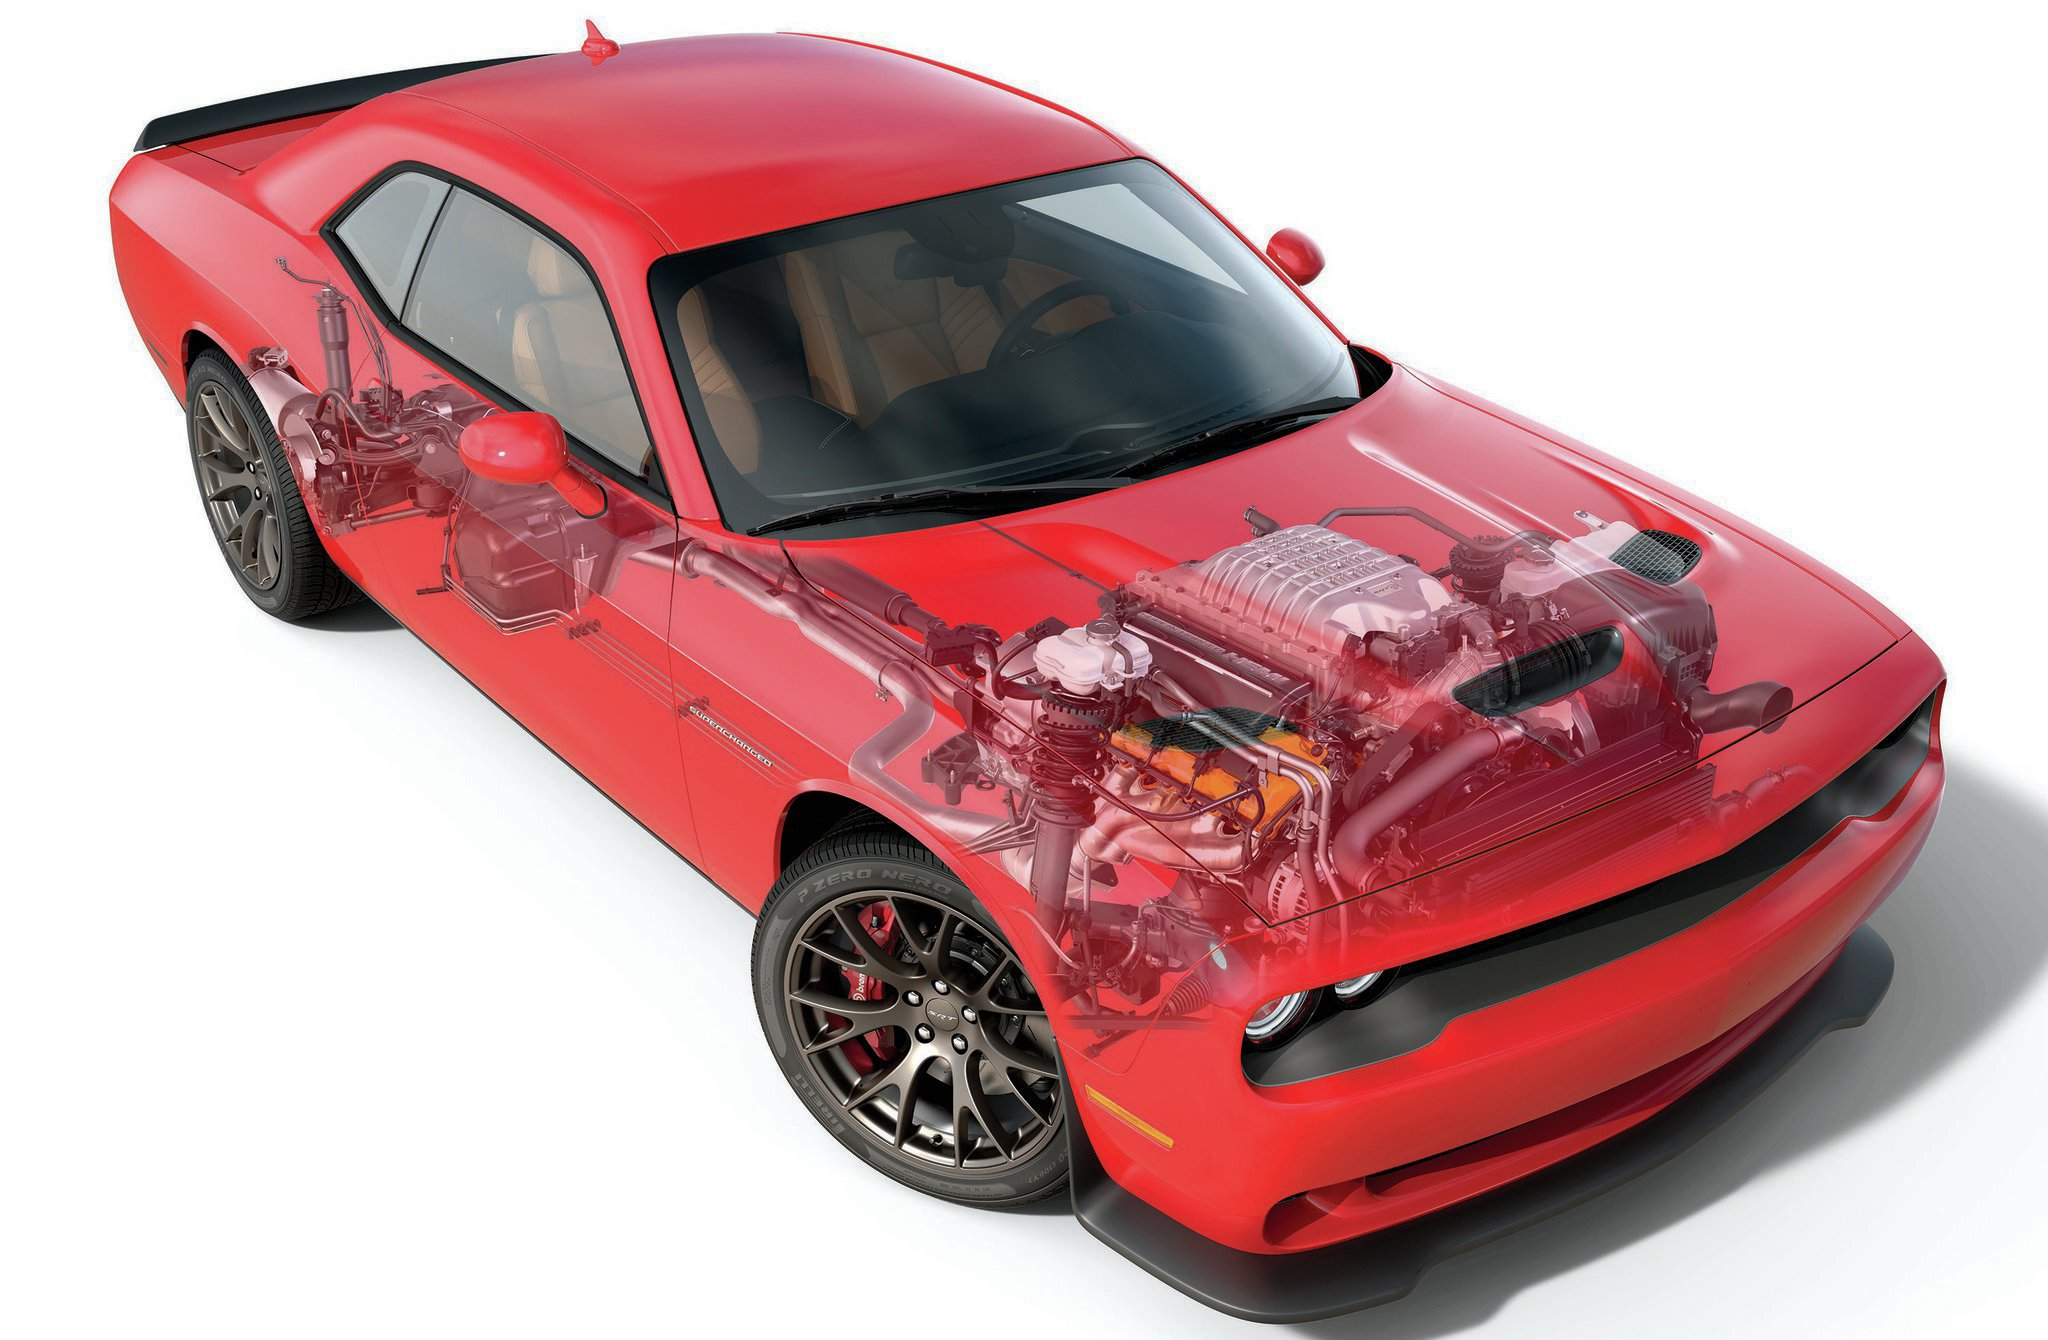 So far, the Challenger SRT8 is the only car available with the supercharged Hellcat option. Let's hope the Hellcat option box pops on Charger and Grand Cherokee order forms soon.